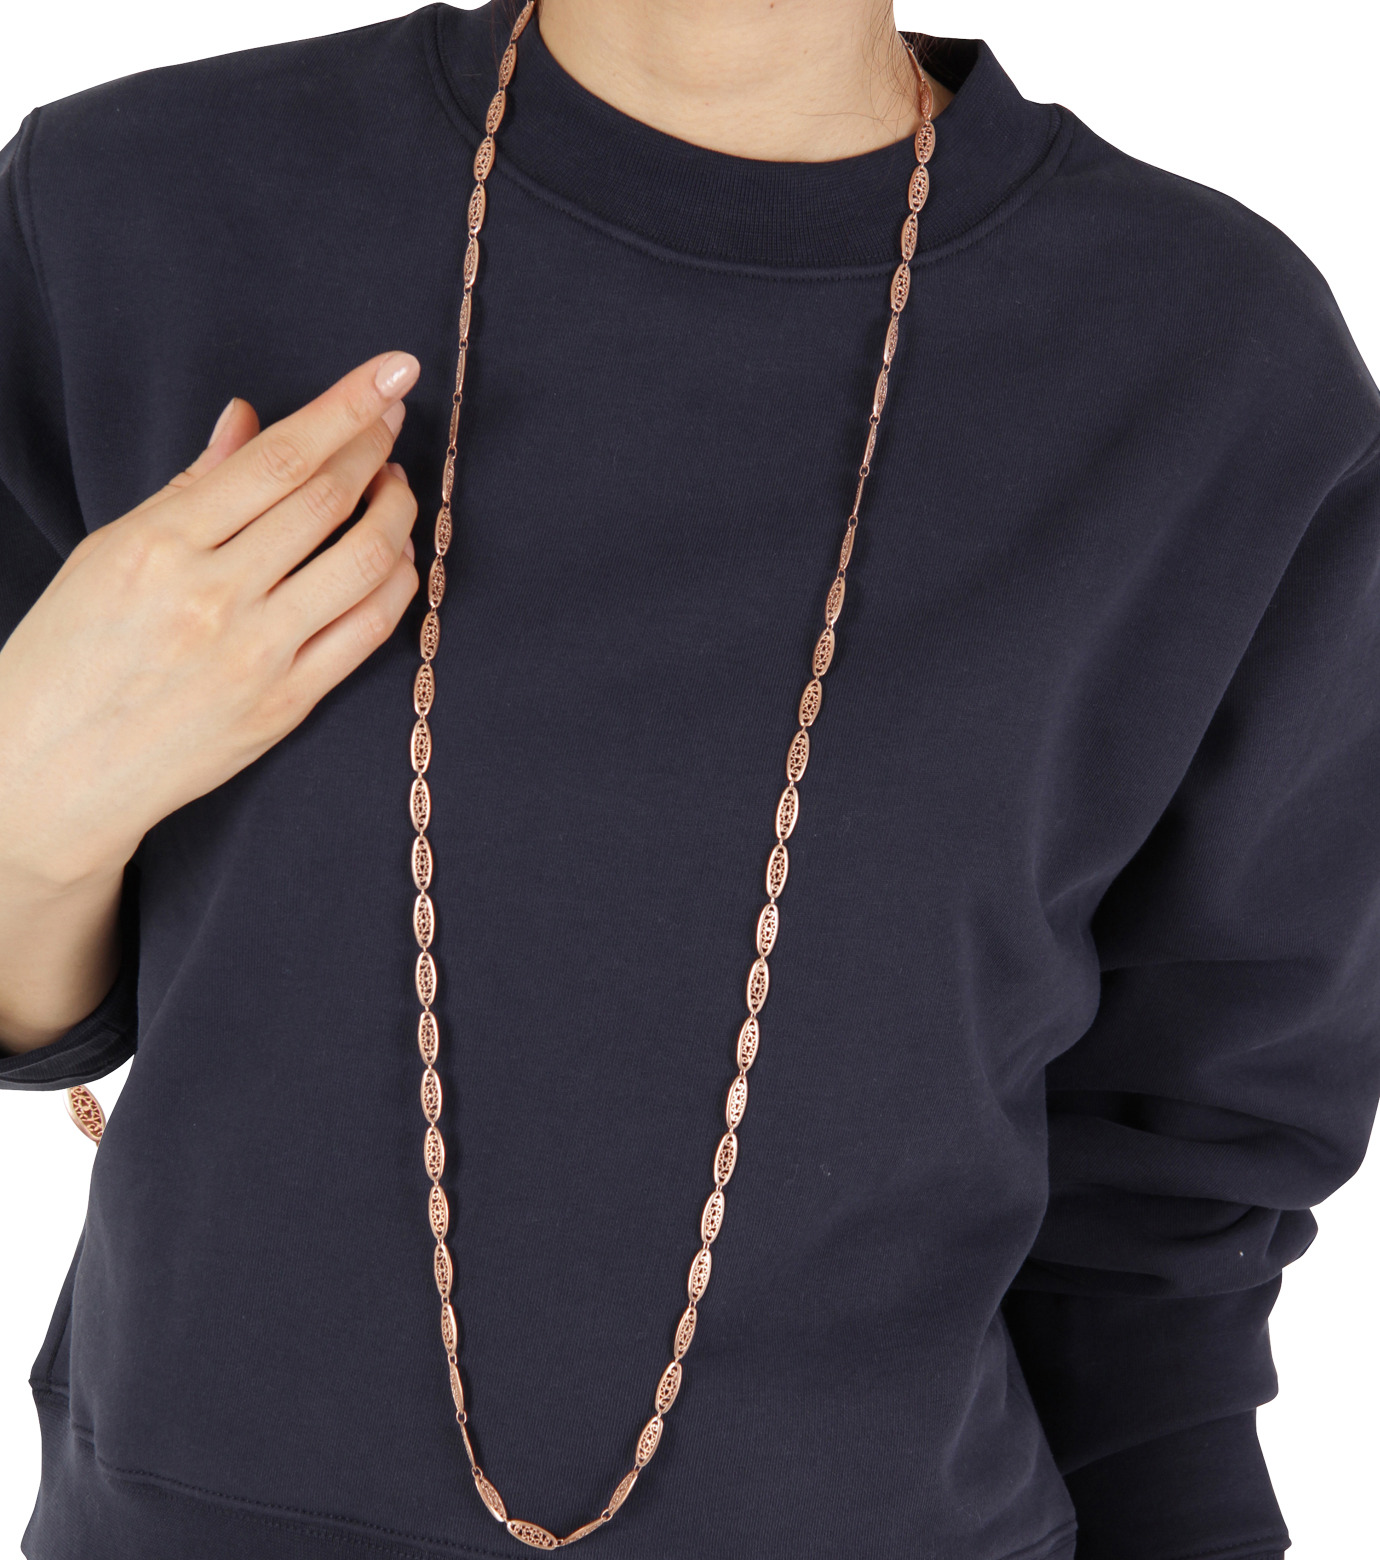 I AM by Ileana Makri(アイ アム バイ イリーナ マクリ)のChantilly Single Necklace Ellipse-ROSE(ネックレス/necklace)-O842-62-099-75 拡大詳細画像3